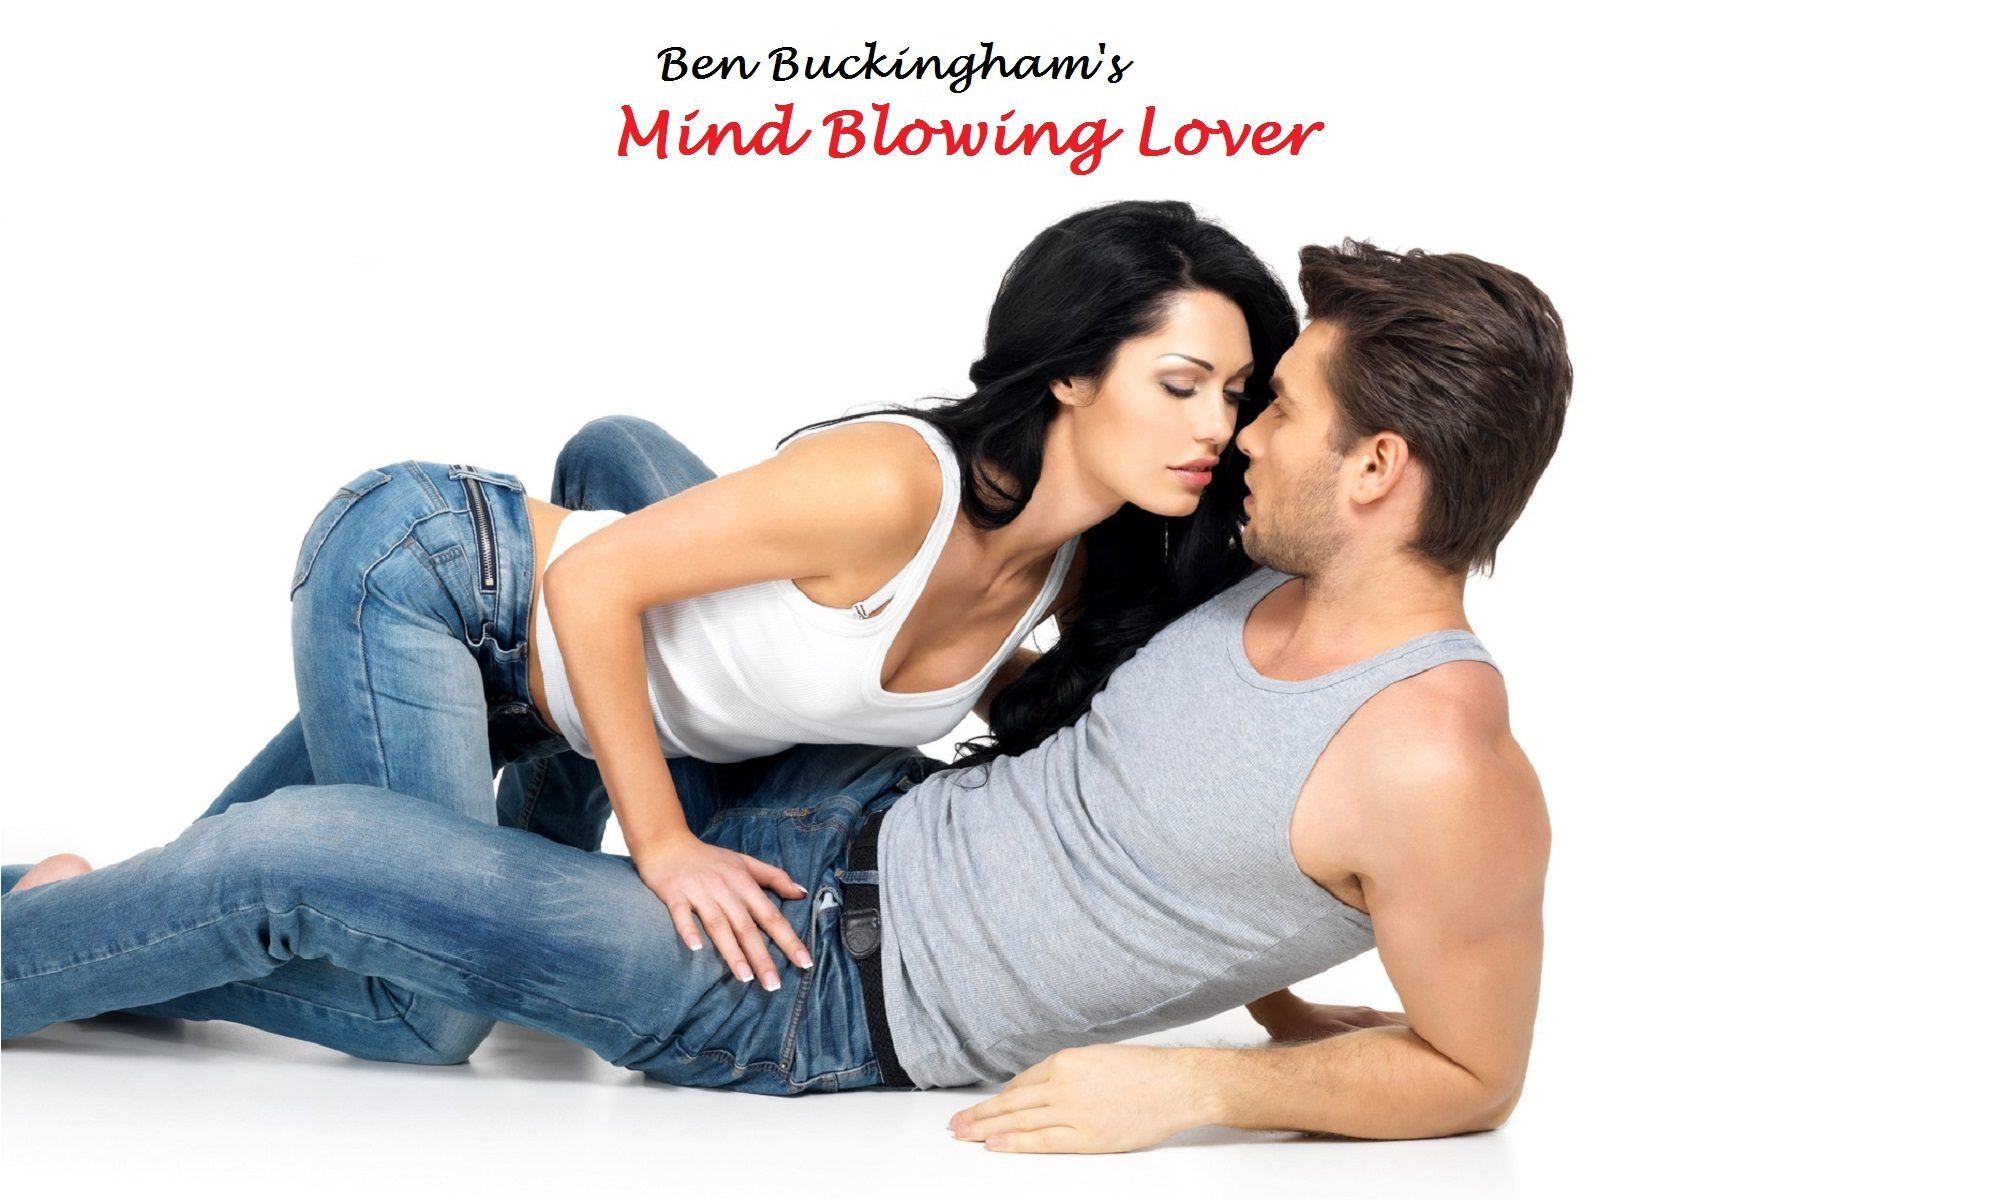 Ben Buckingham - Mind Blowing Lover